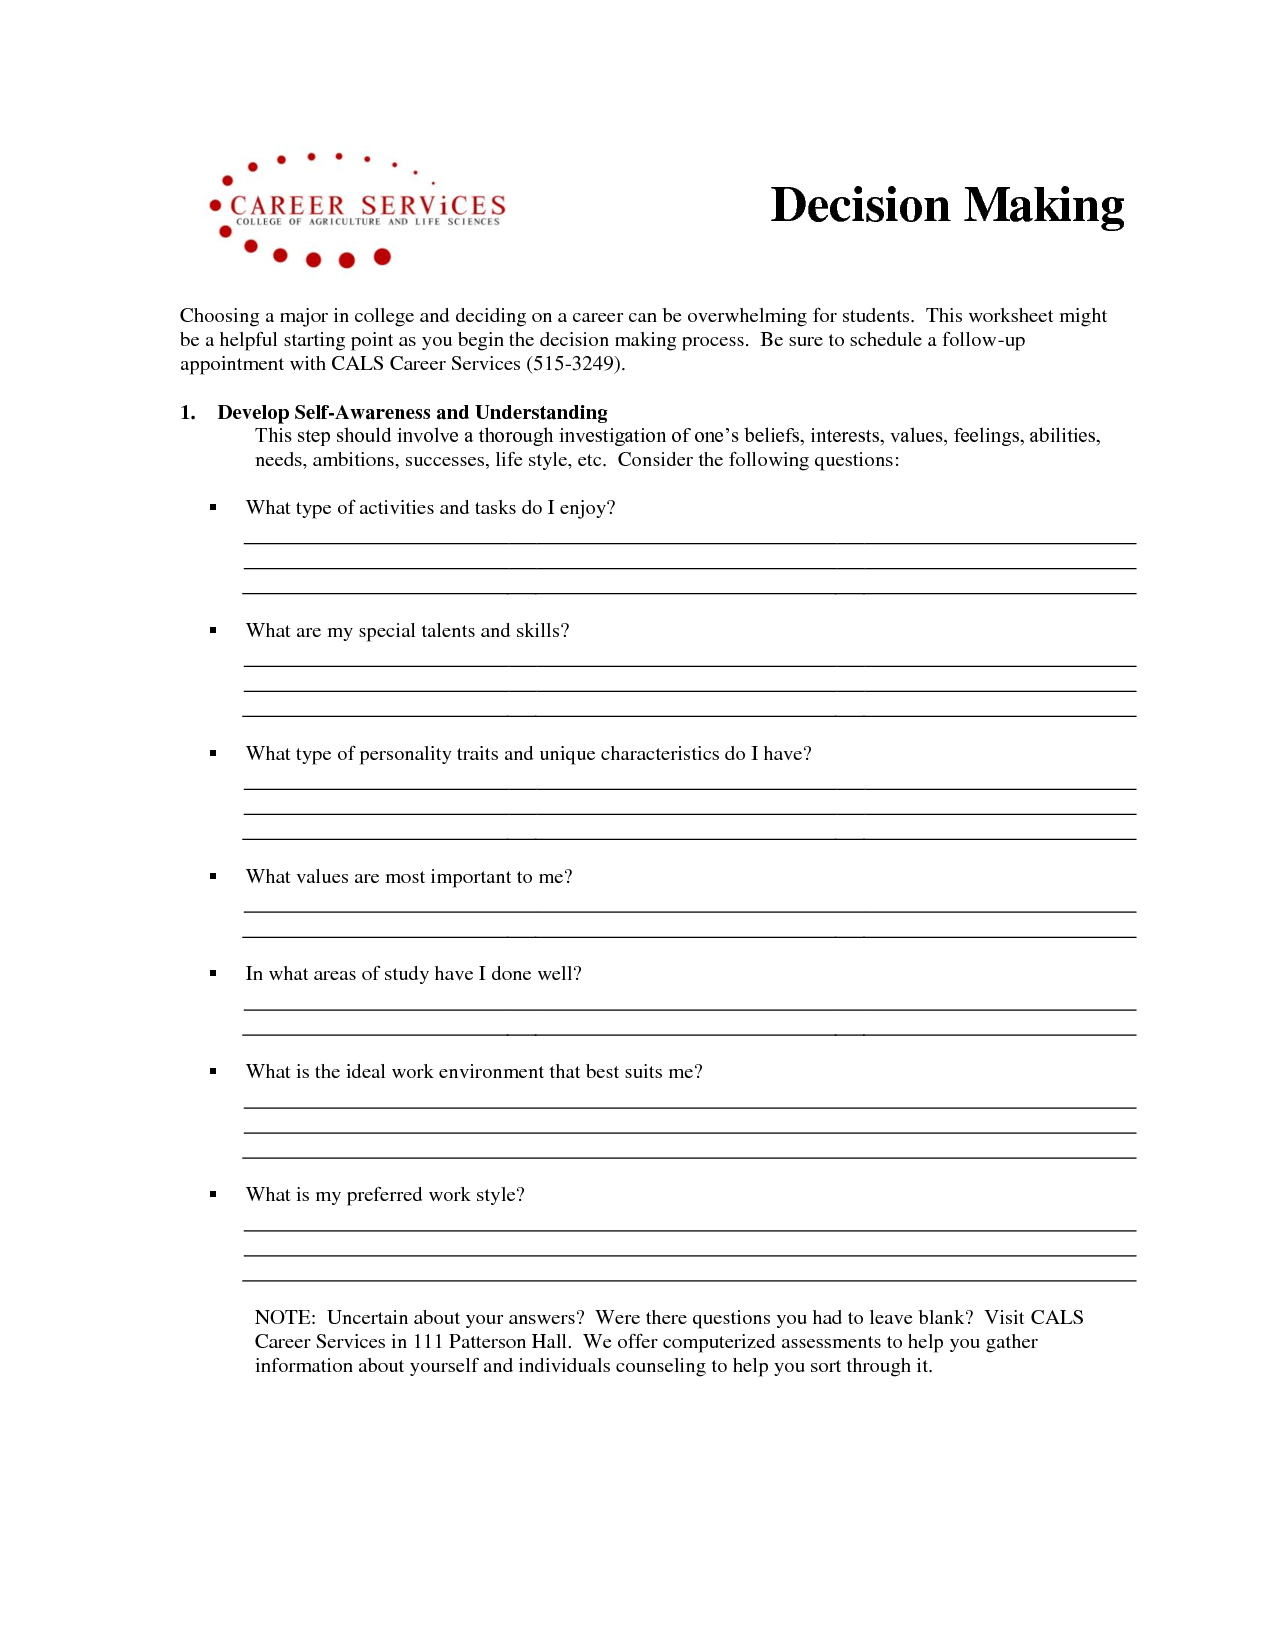 Making Choices Worksheets For Adults